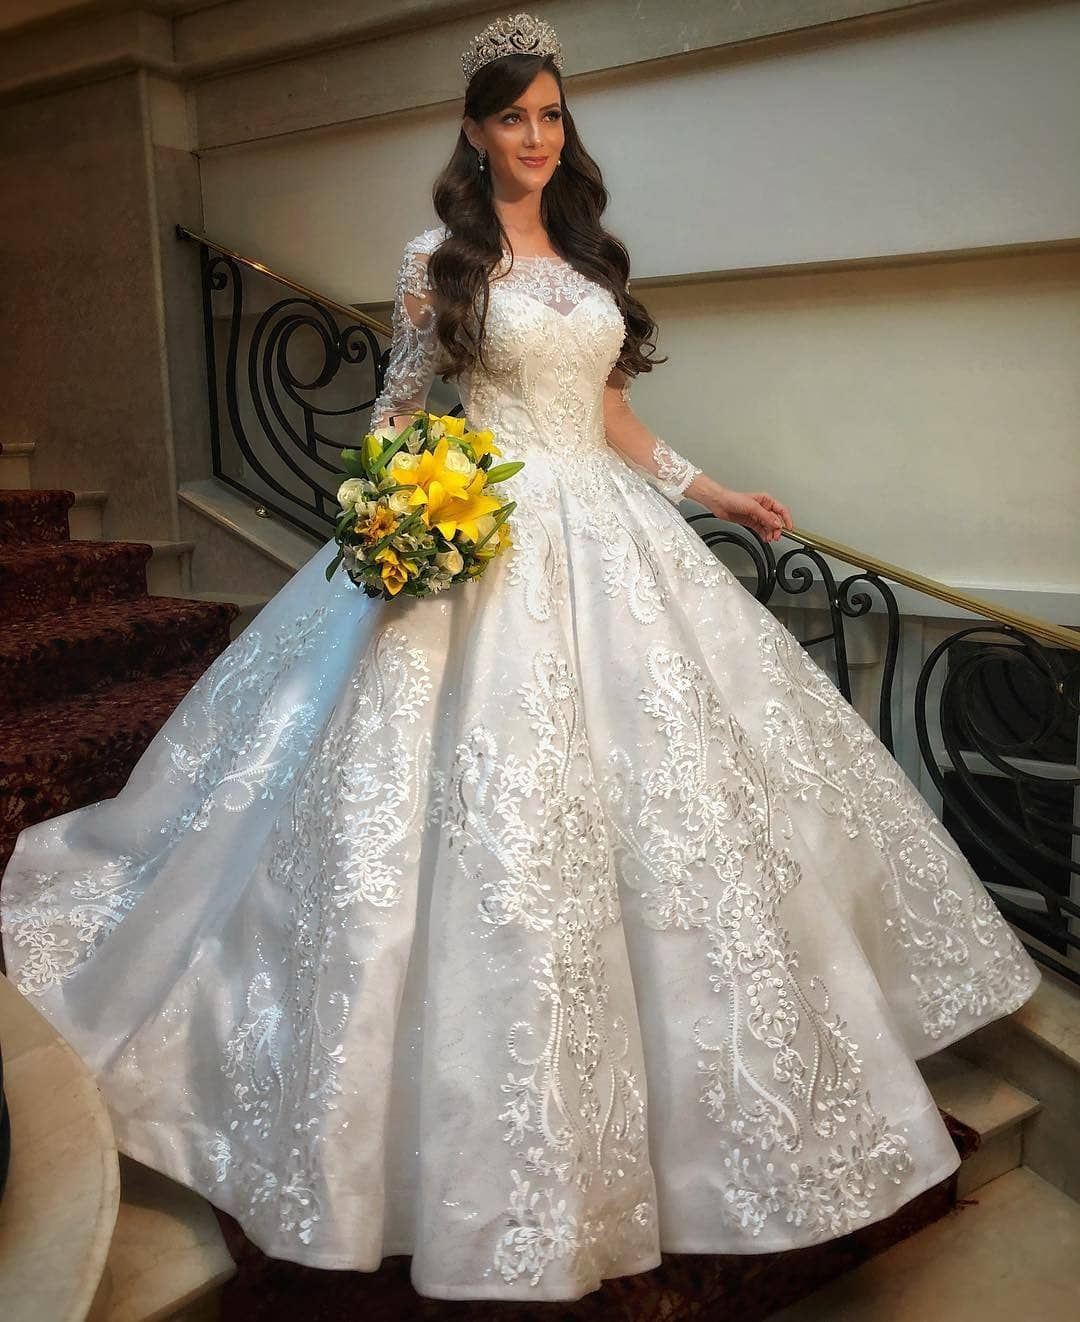 Replica Wedding Dresses From The Usa Ball Gowns Wedding Beautiful Wedding Dresses Wedding Dresses [ 1322 x 1080 Pixel ]